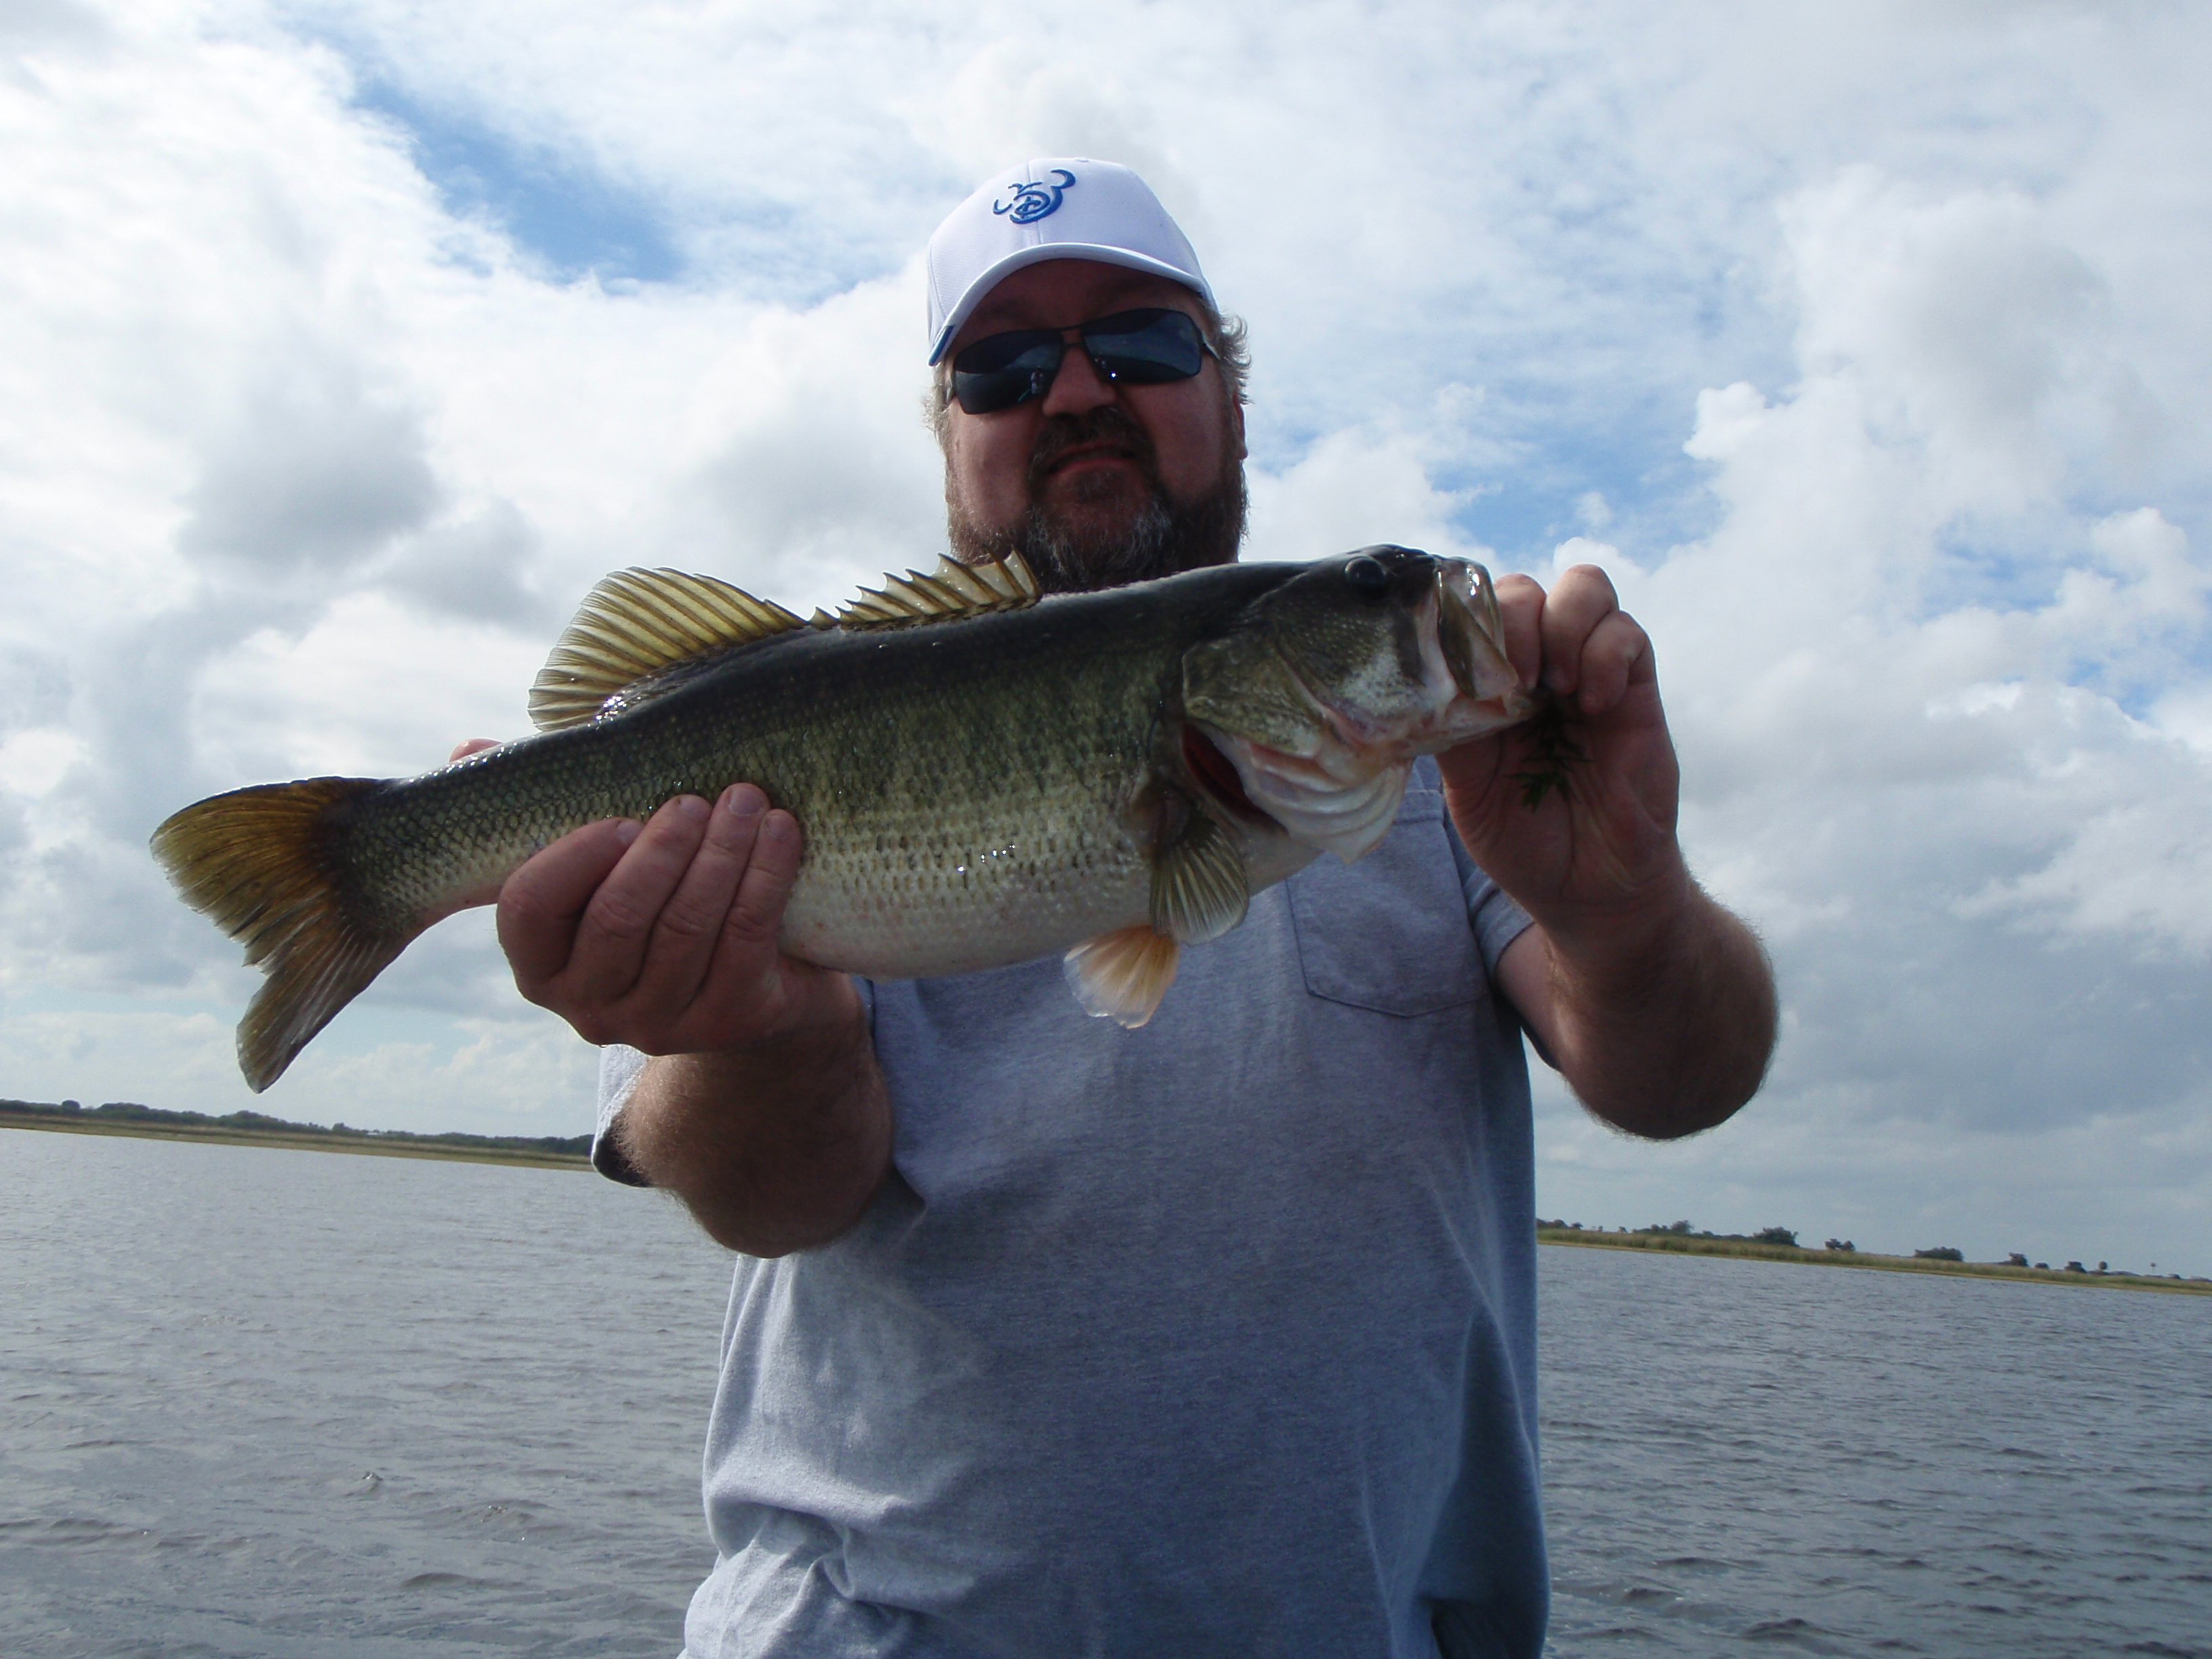 Central florida bass fishing lake toho thanks giving week for Bass fishing orlando